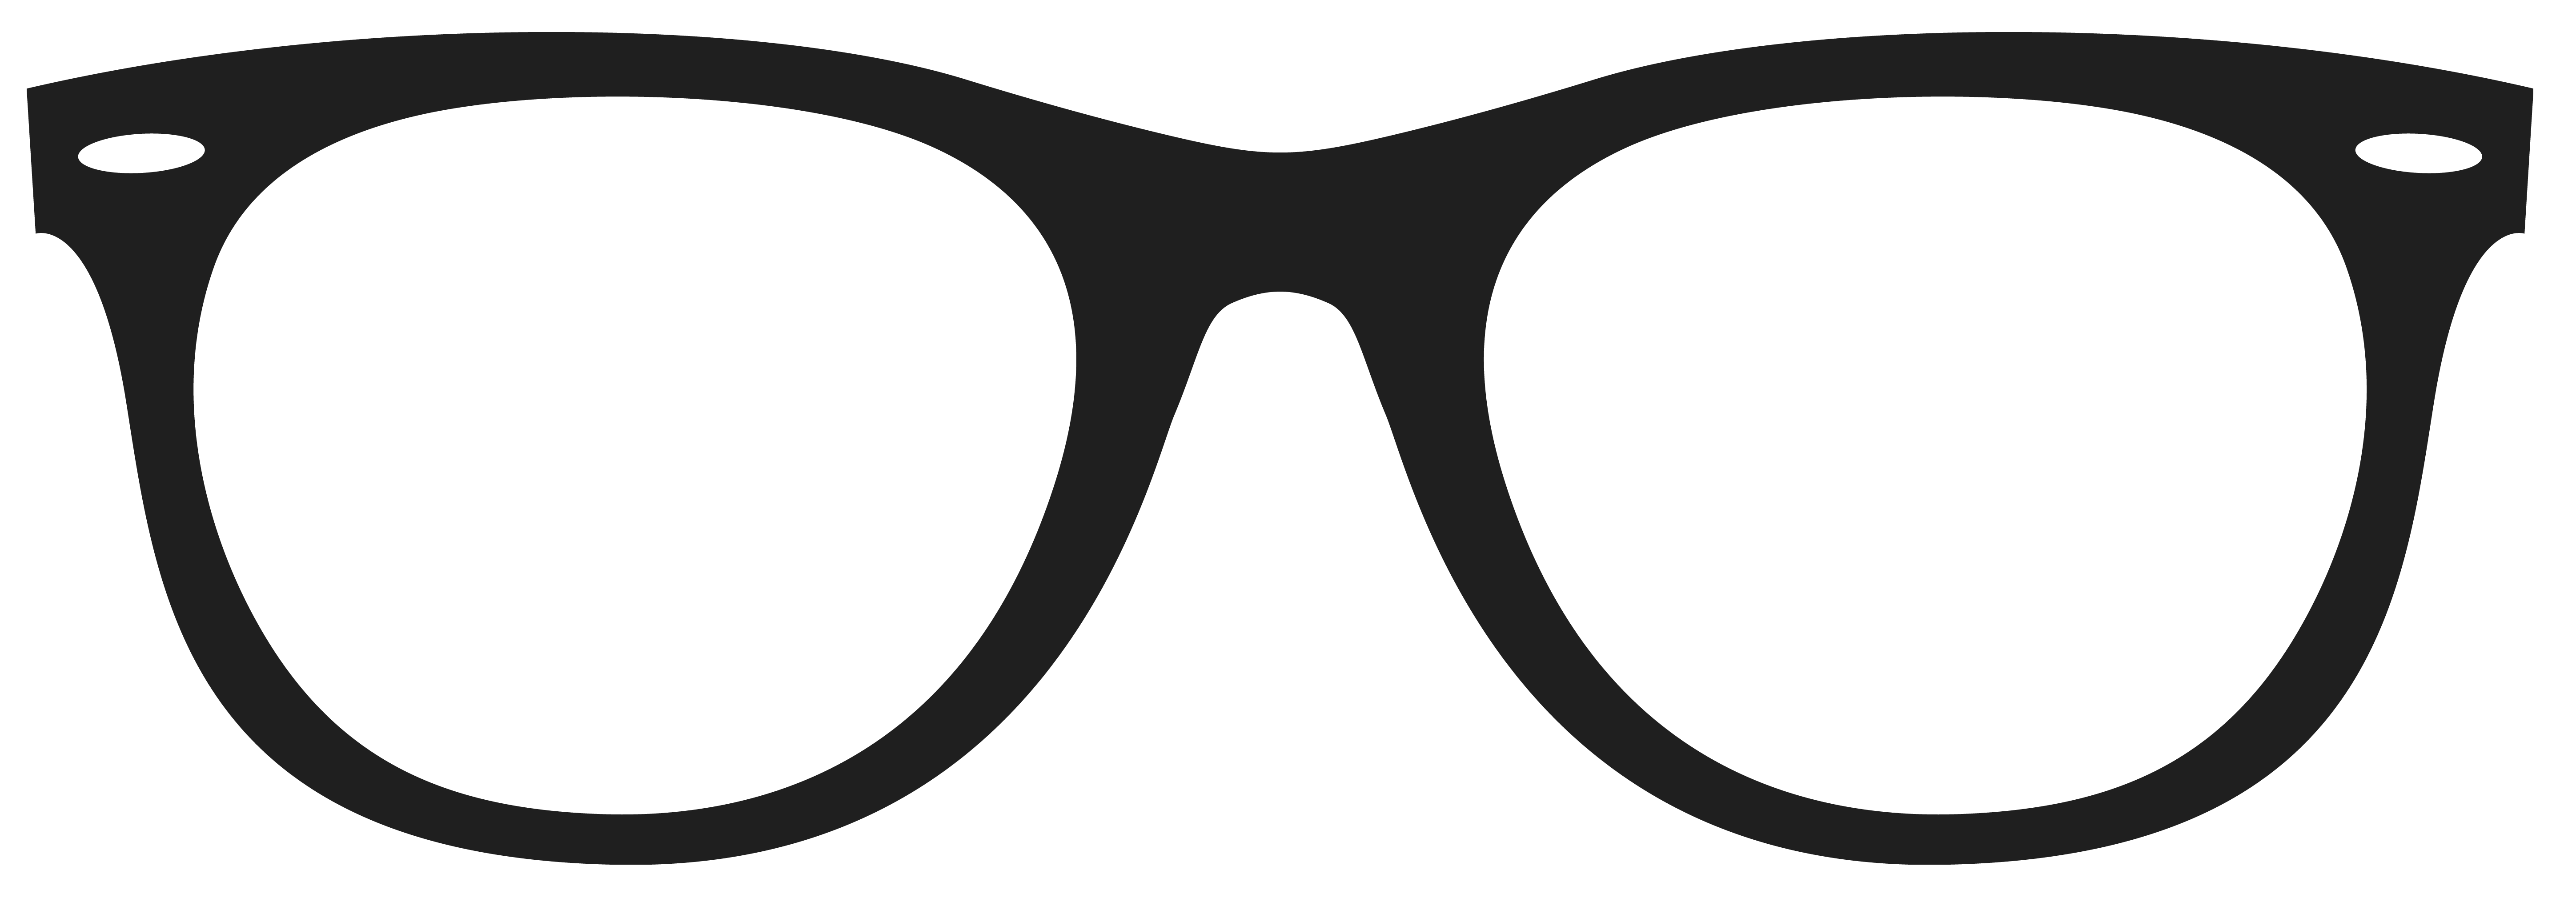 Geek clipart glass transparent Glasses HD Images Download Glasses